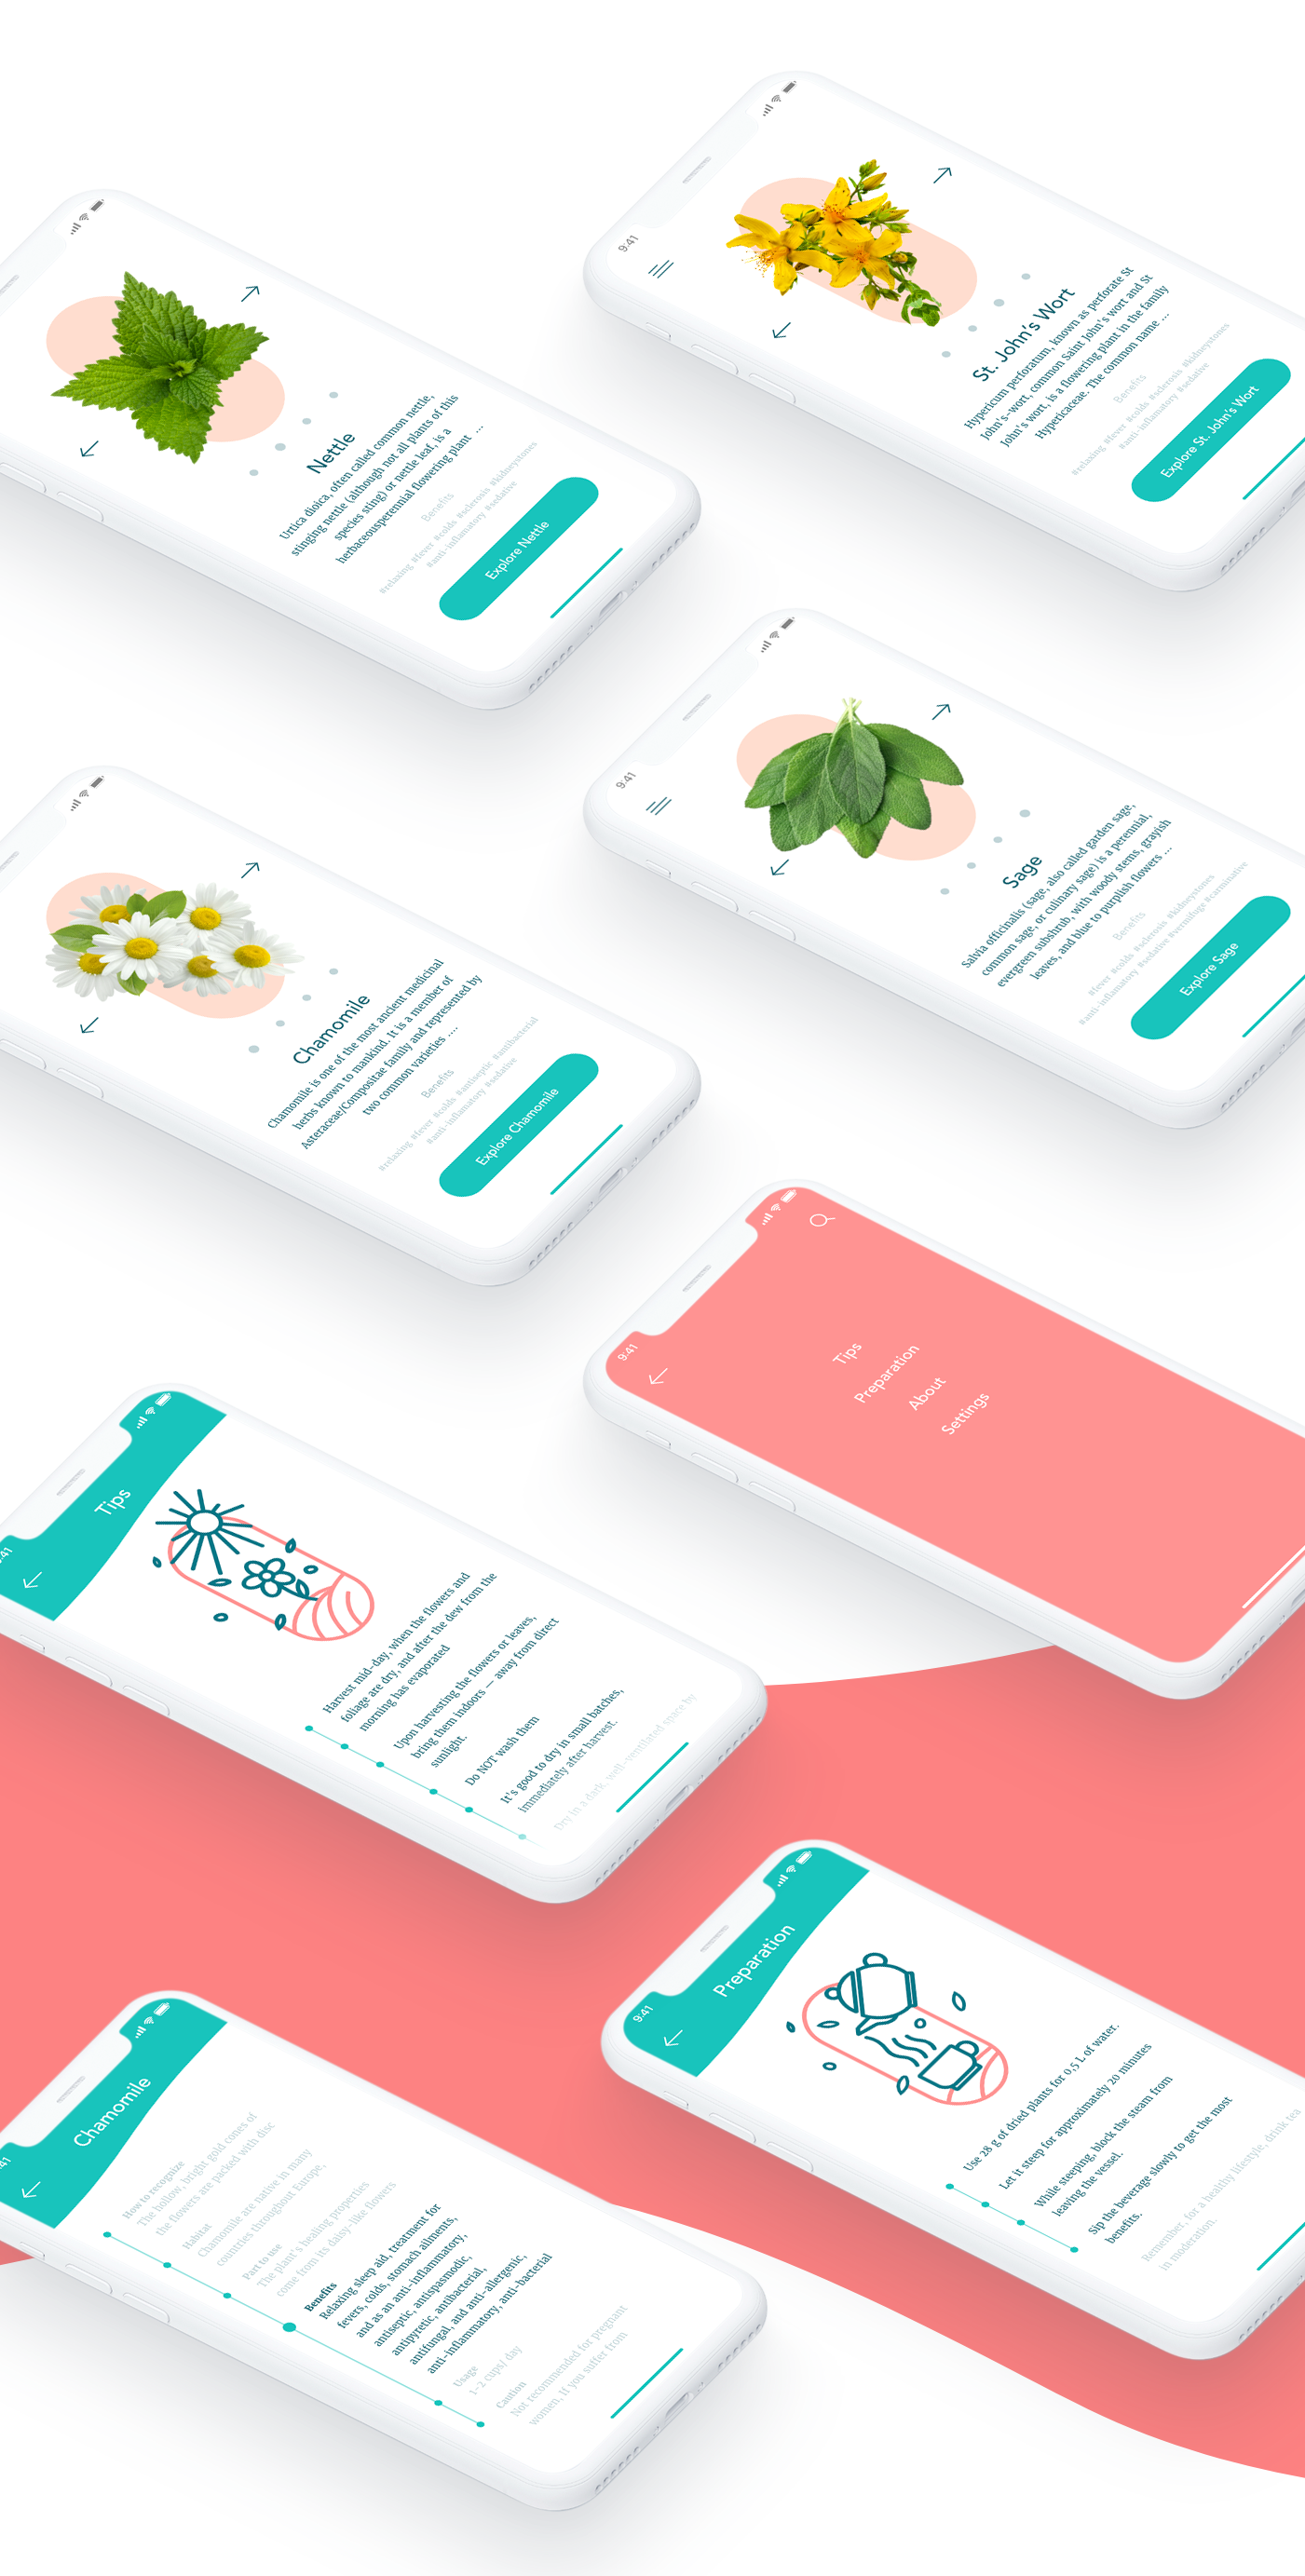 Tea app UI and UX design